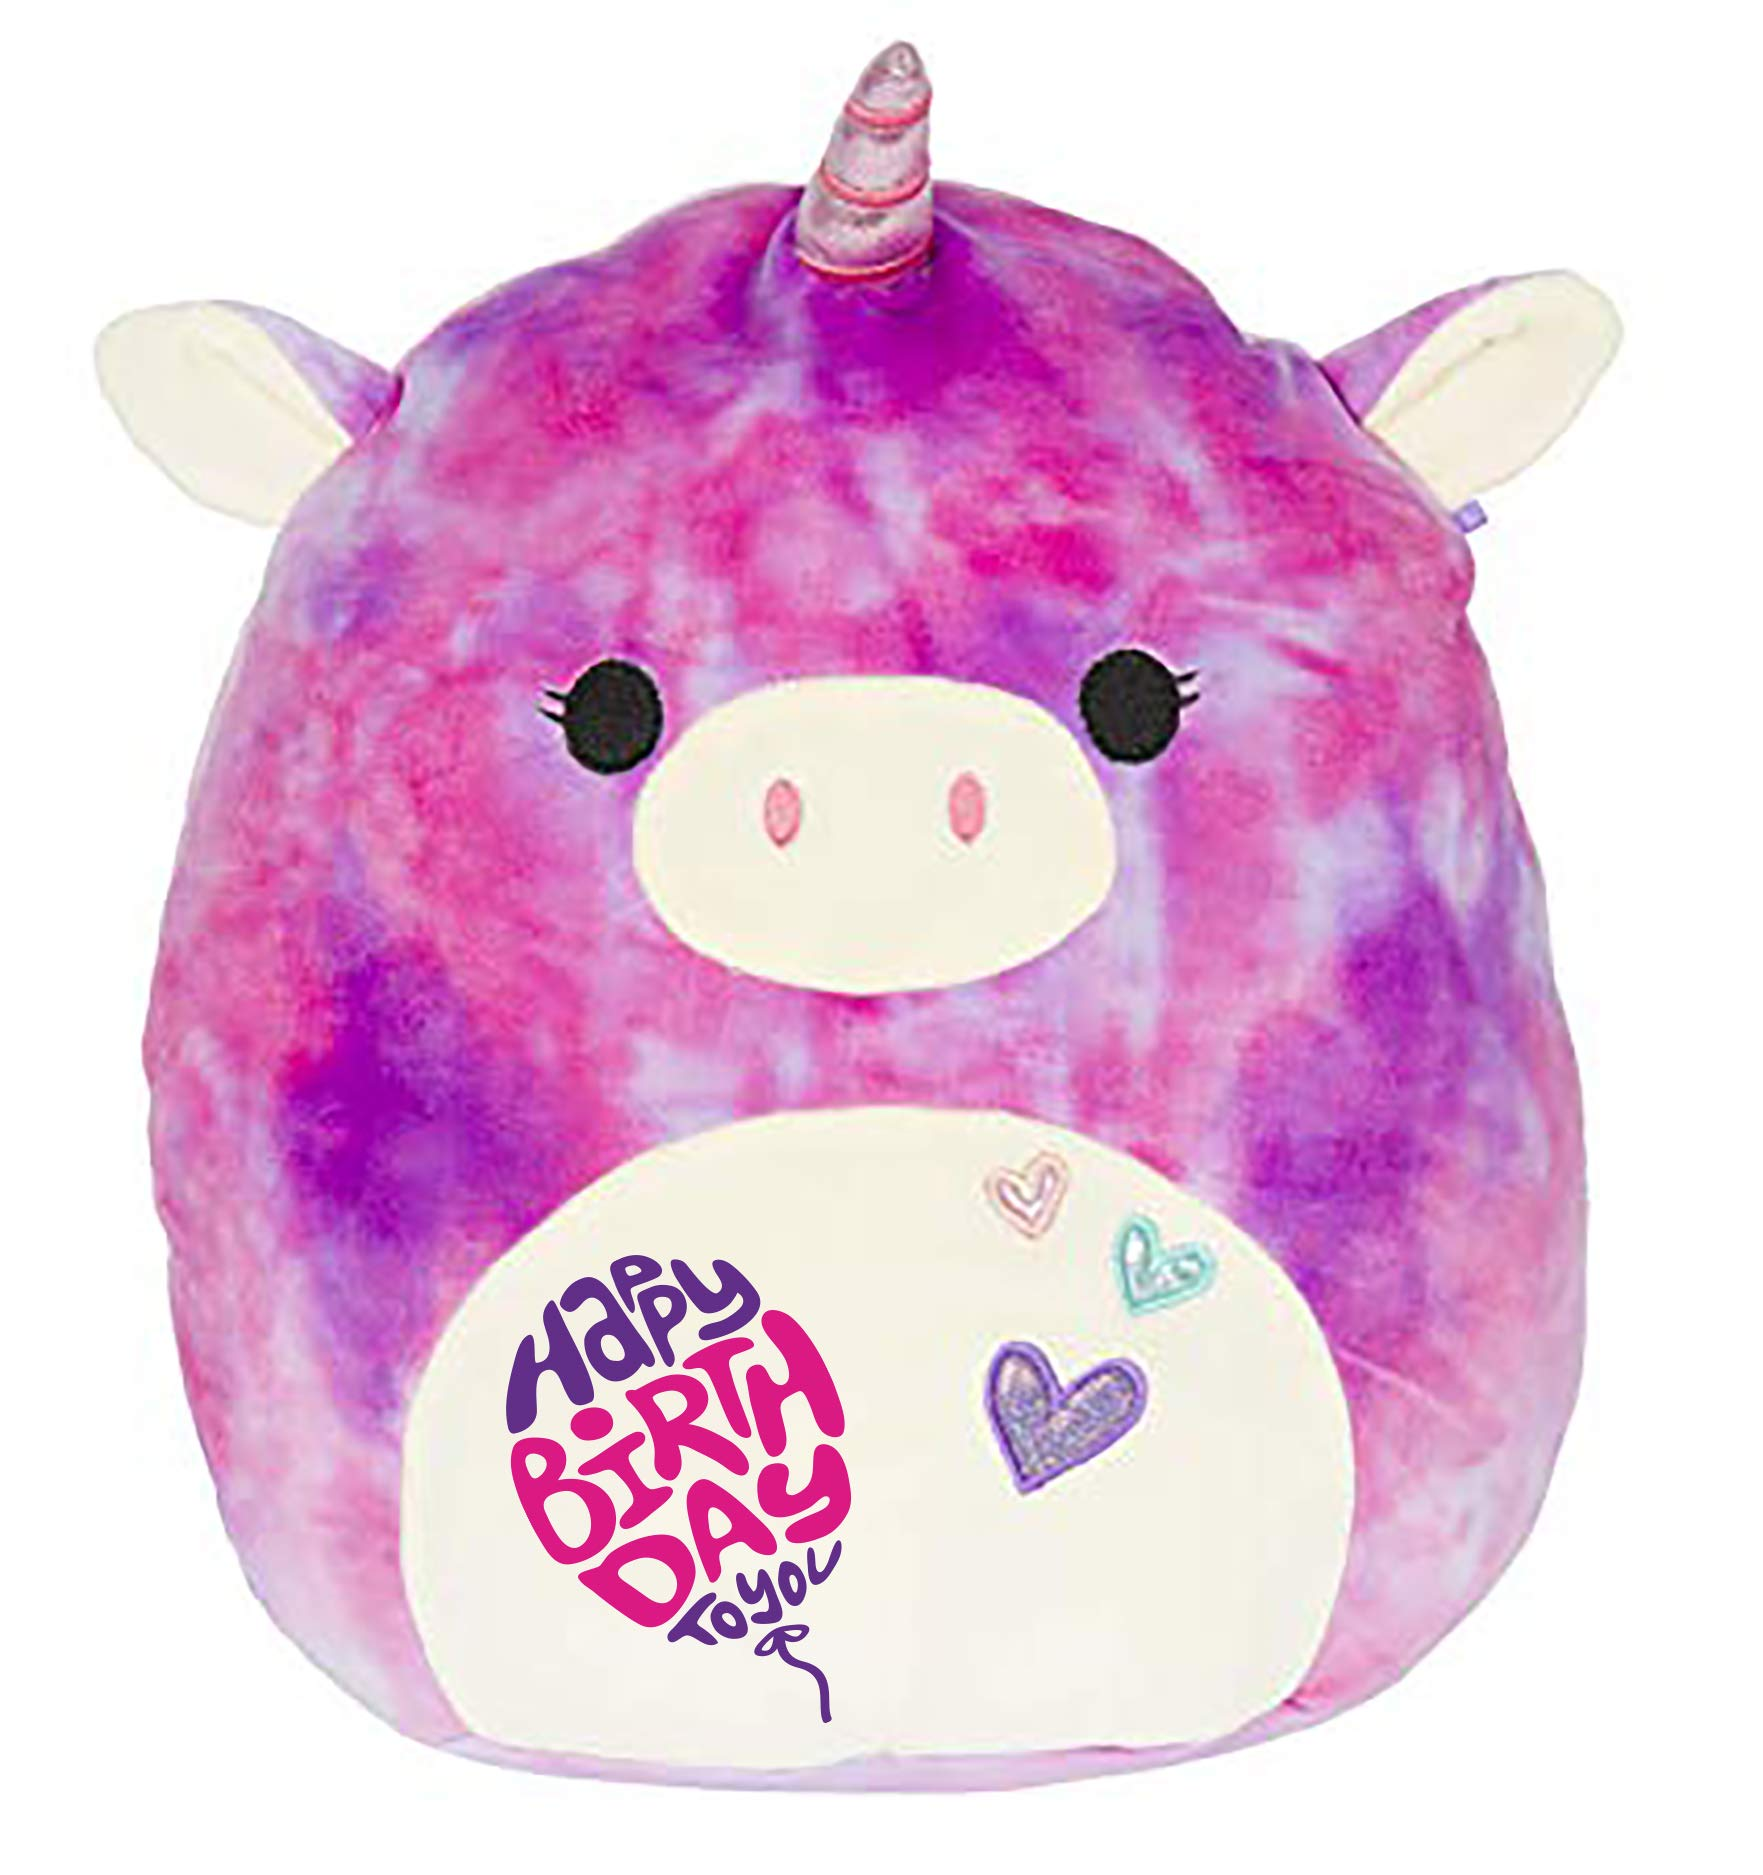 Limited Edition! Happy Birthday Squishmallow Pre-Customized for Birthday Original Kellytoy 13'' Super Soft Plush Stuffed Animal Pillow (Tie Dye Unicorn)